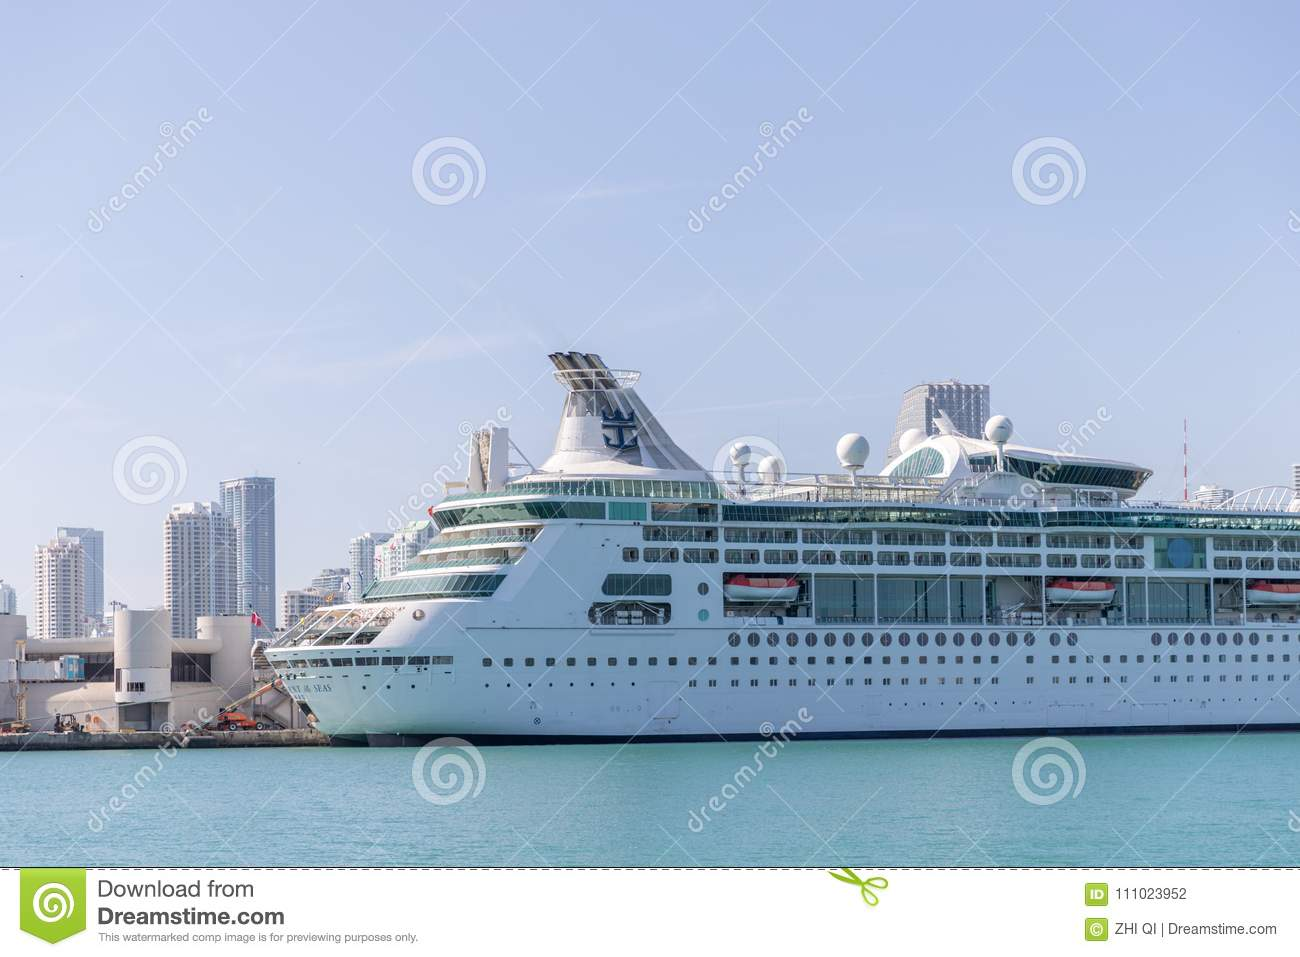 Miami Port Cruise Ship Departing From Miami Port The City Is A Famous